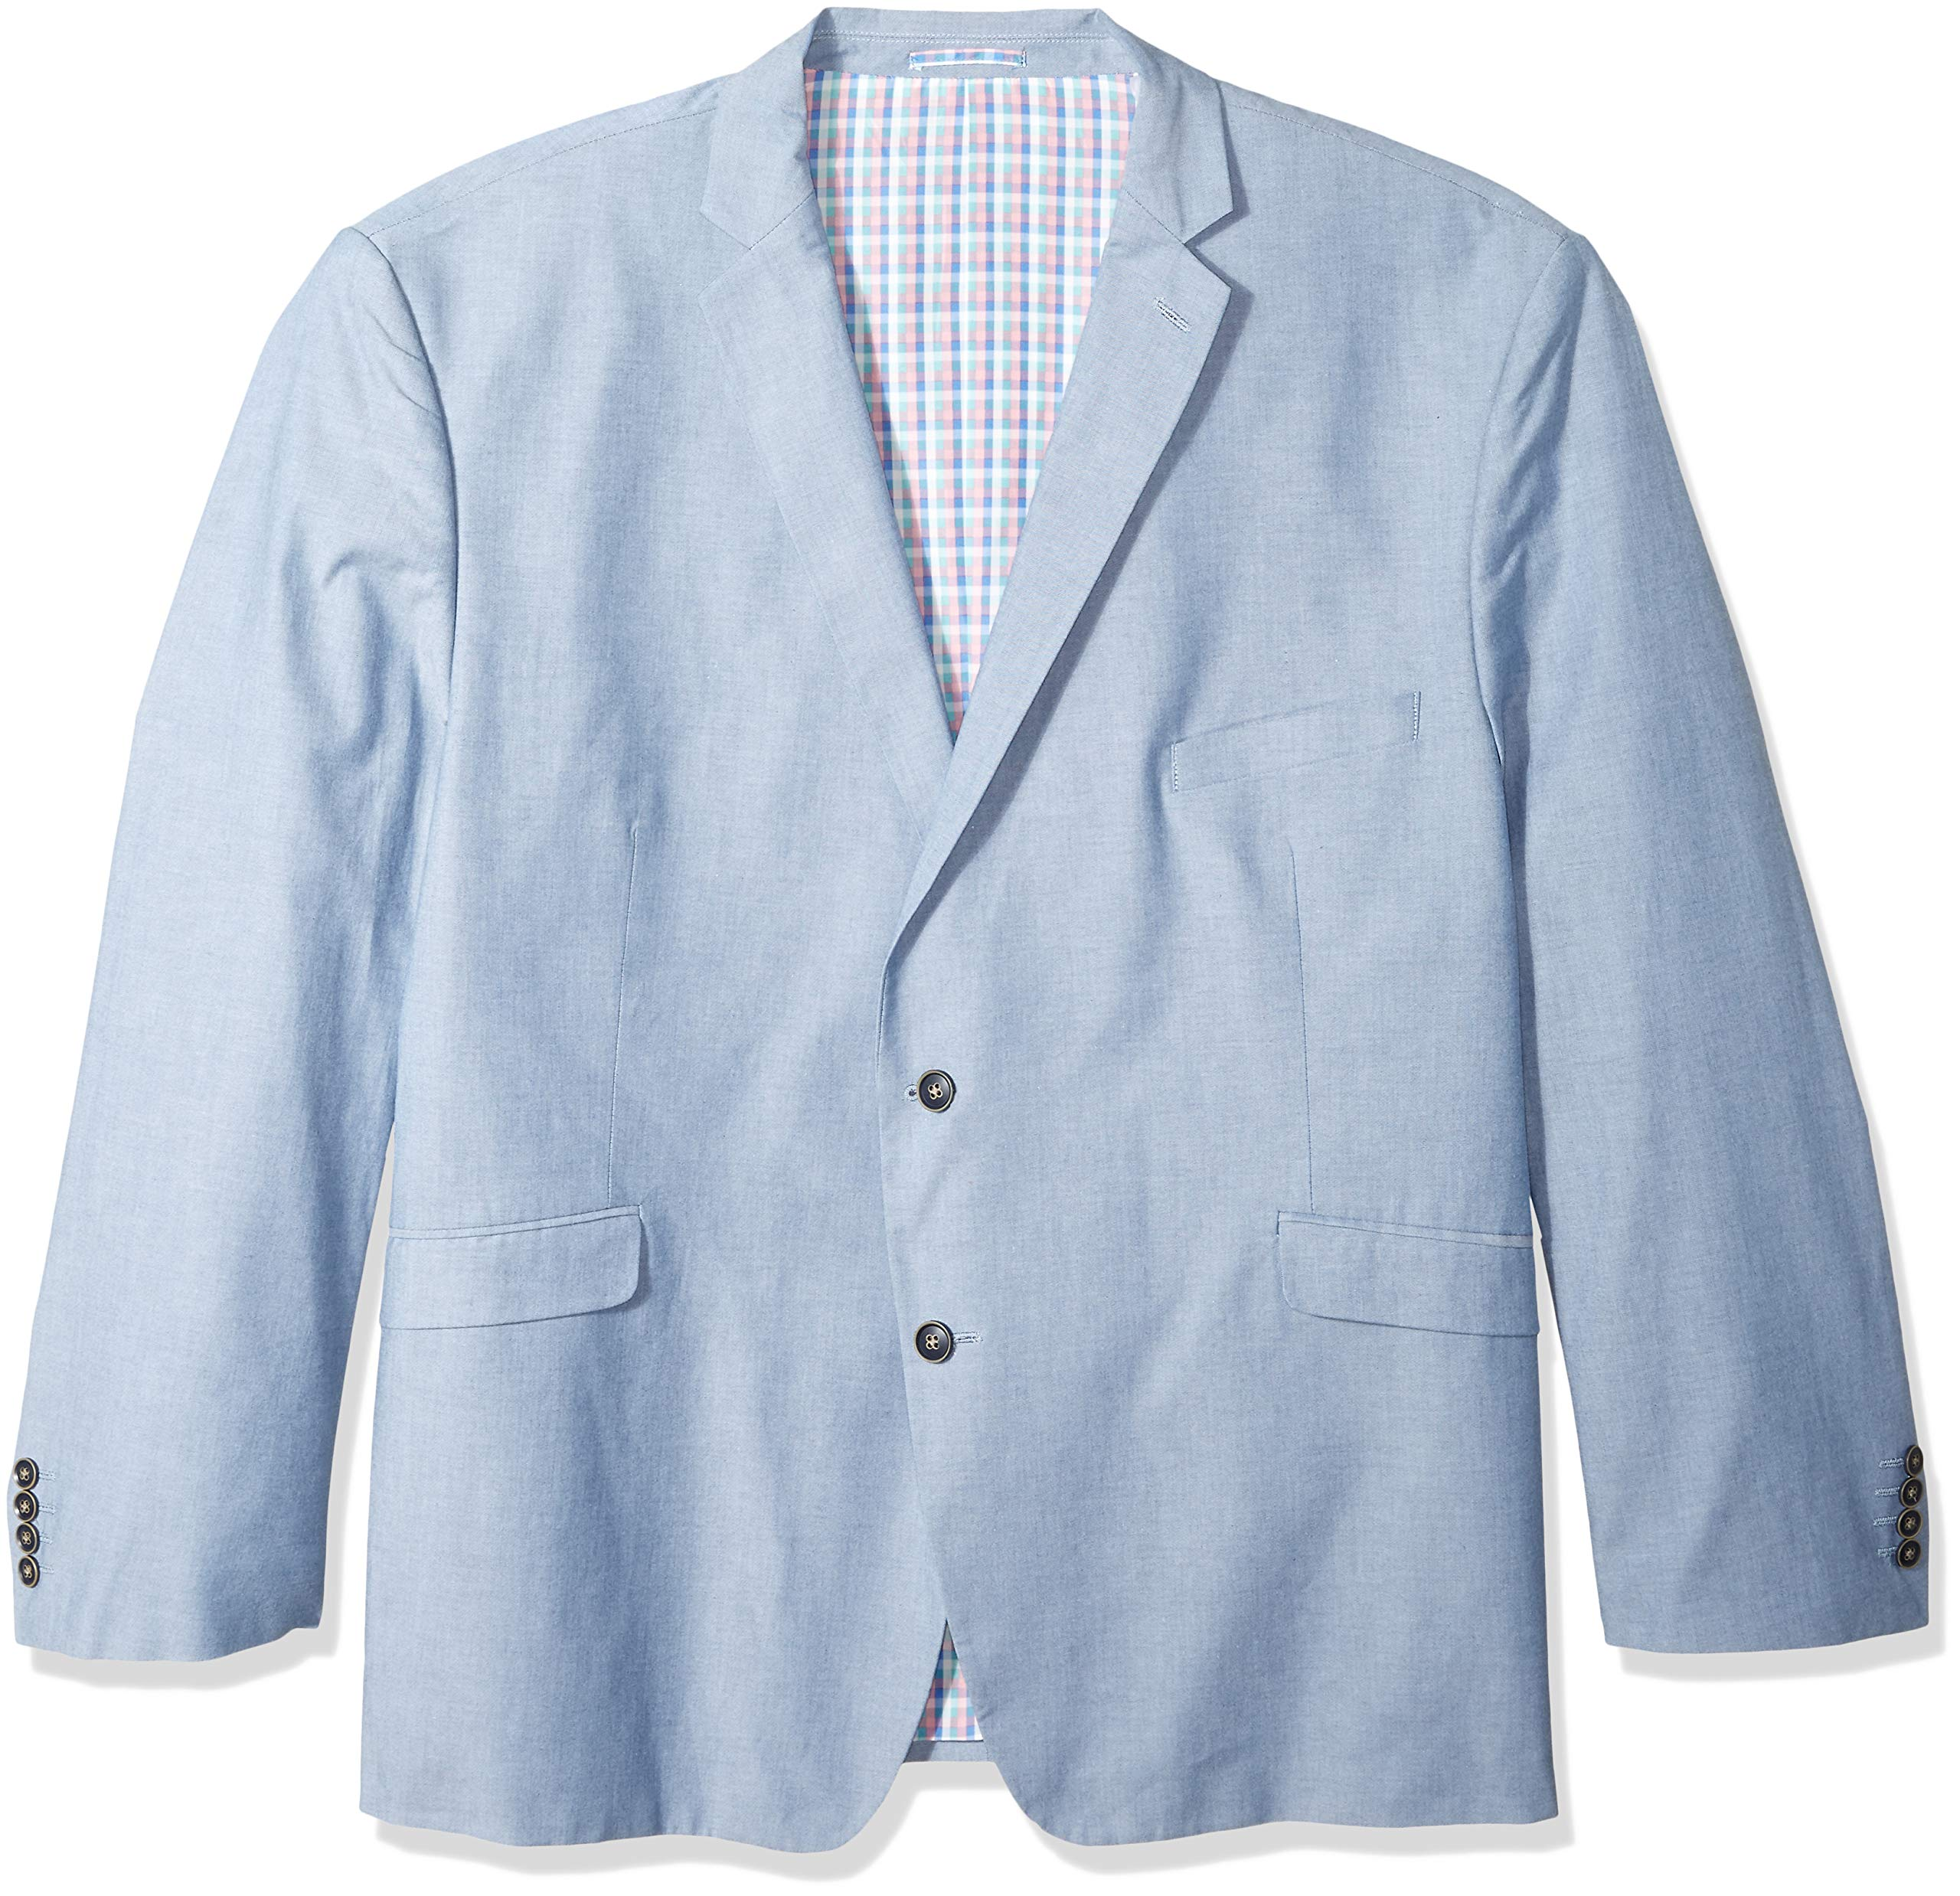 U.S. Polo Assn. Men's Big and Tall Chambray Sport Coat, Blue, 60 Long